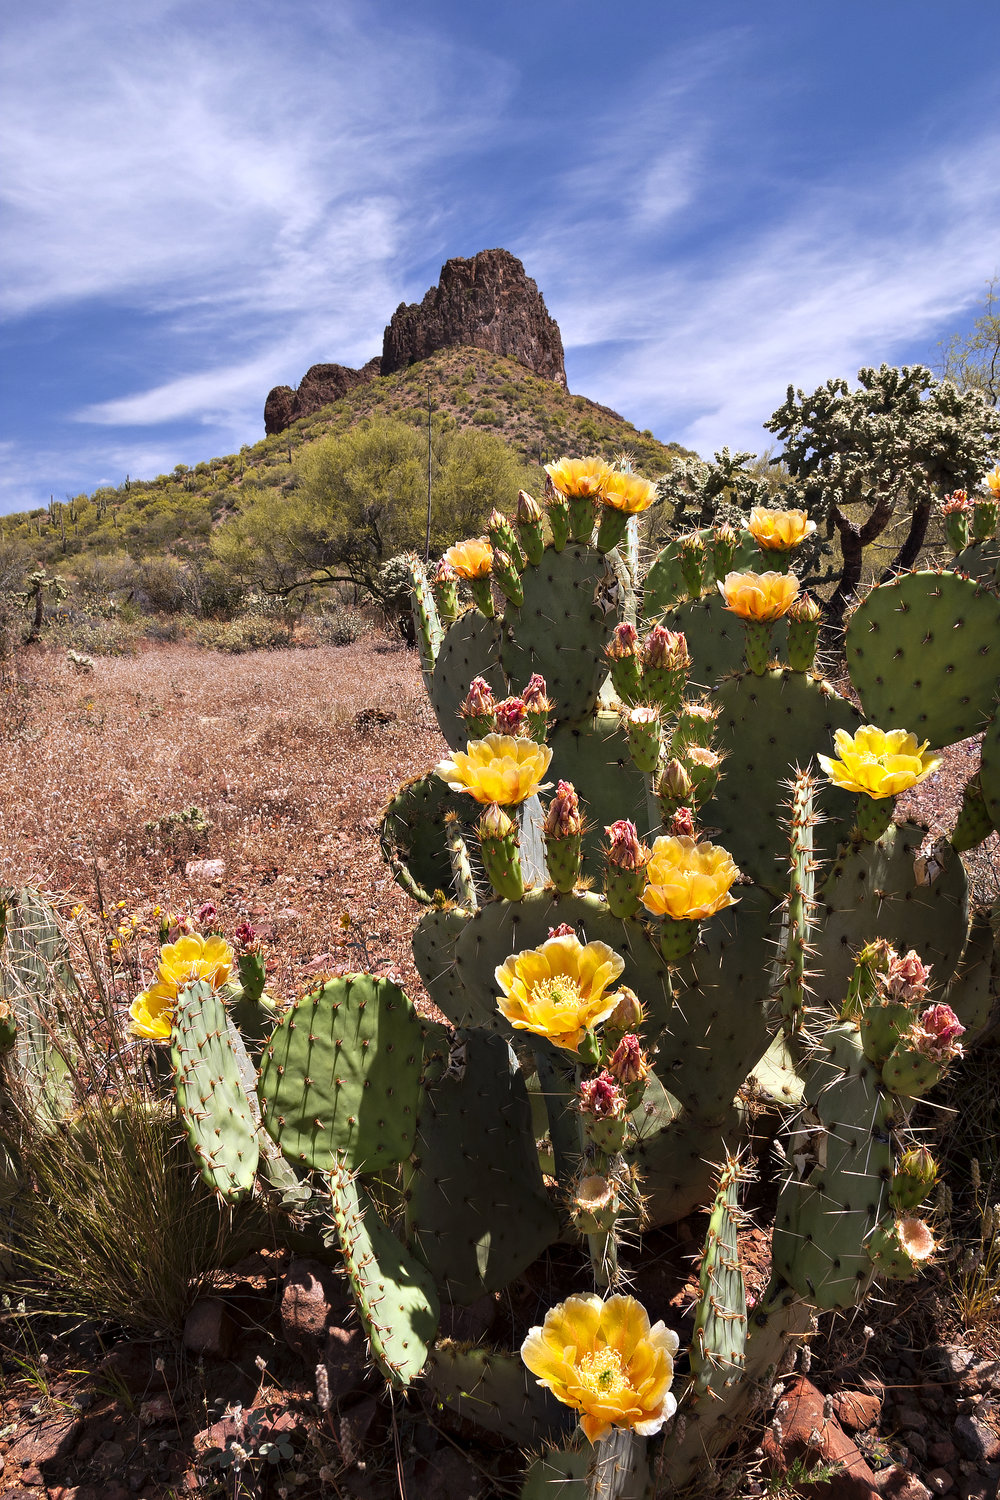 A cactus has many adaptations to survive in the dry desert.